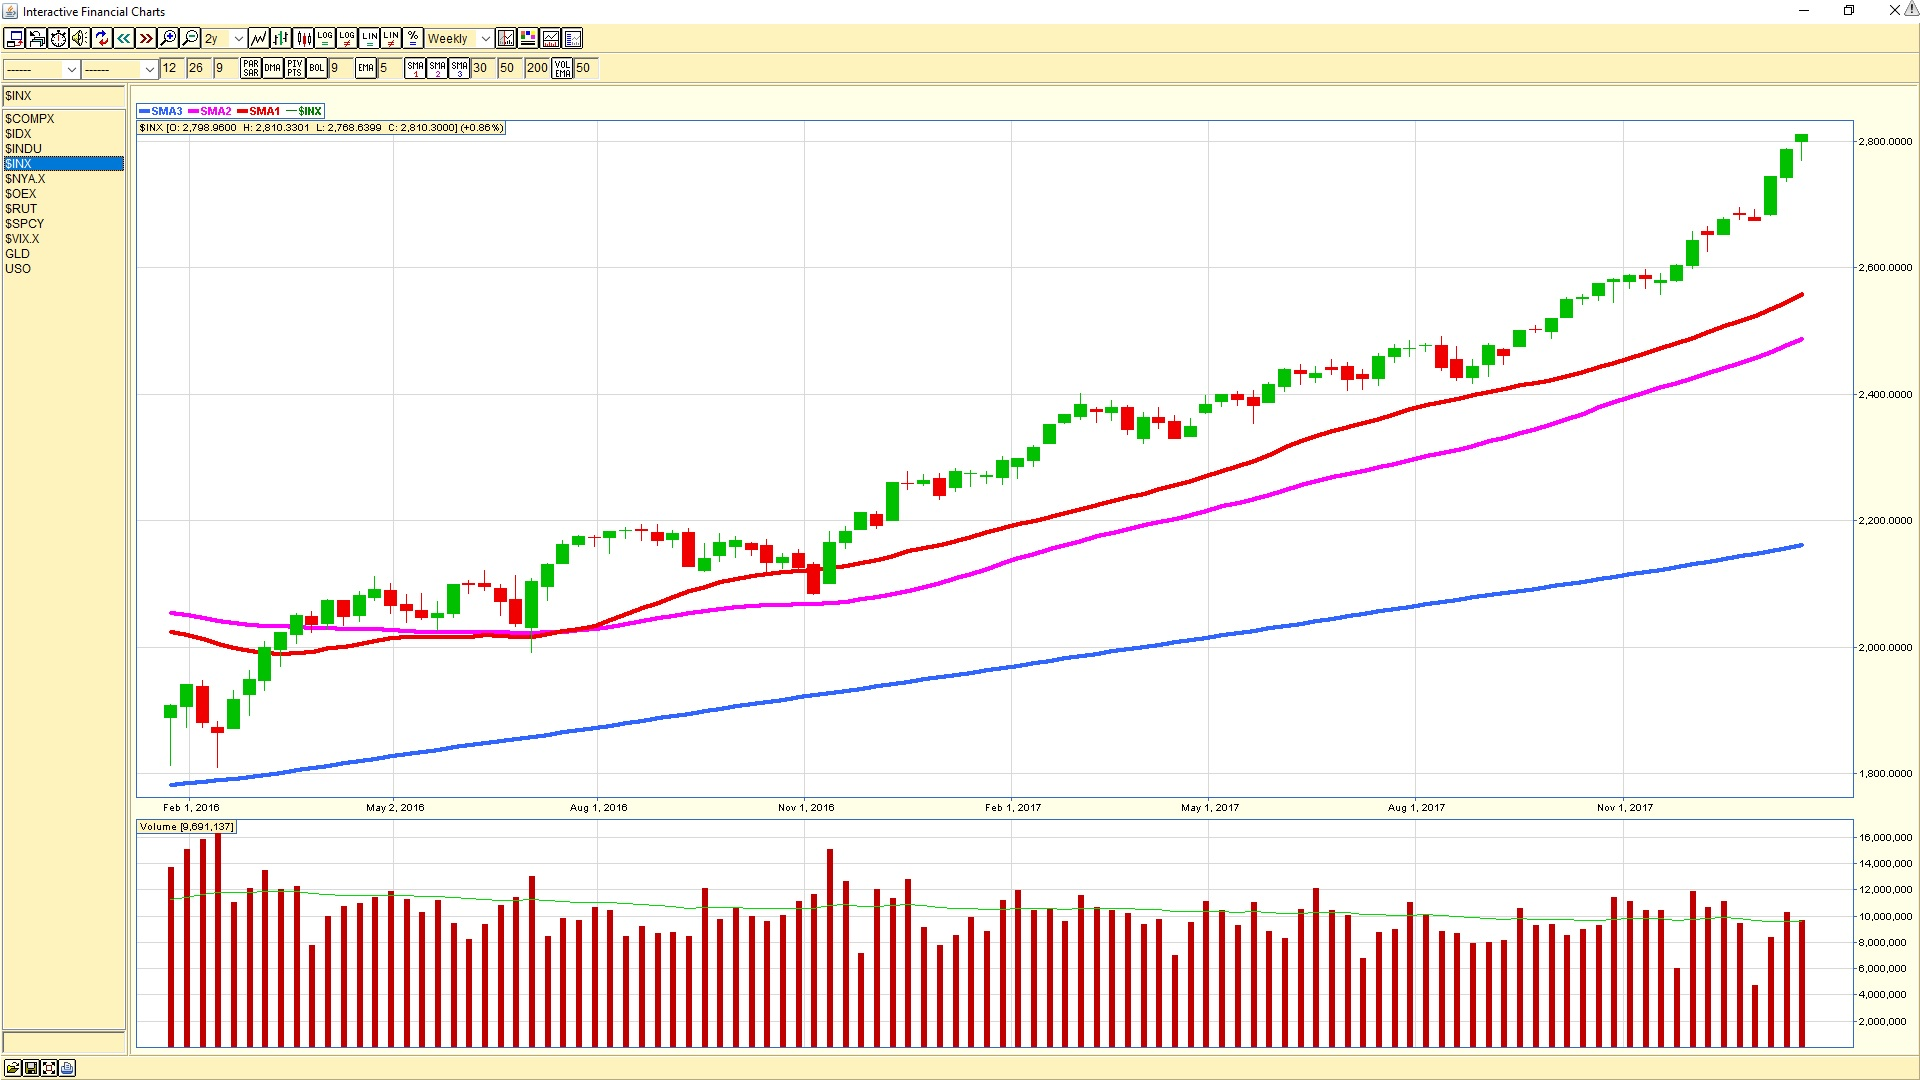 S&P500 weekly chart 20180119